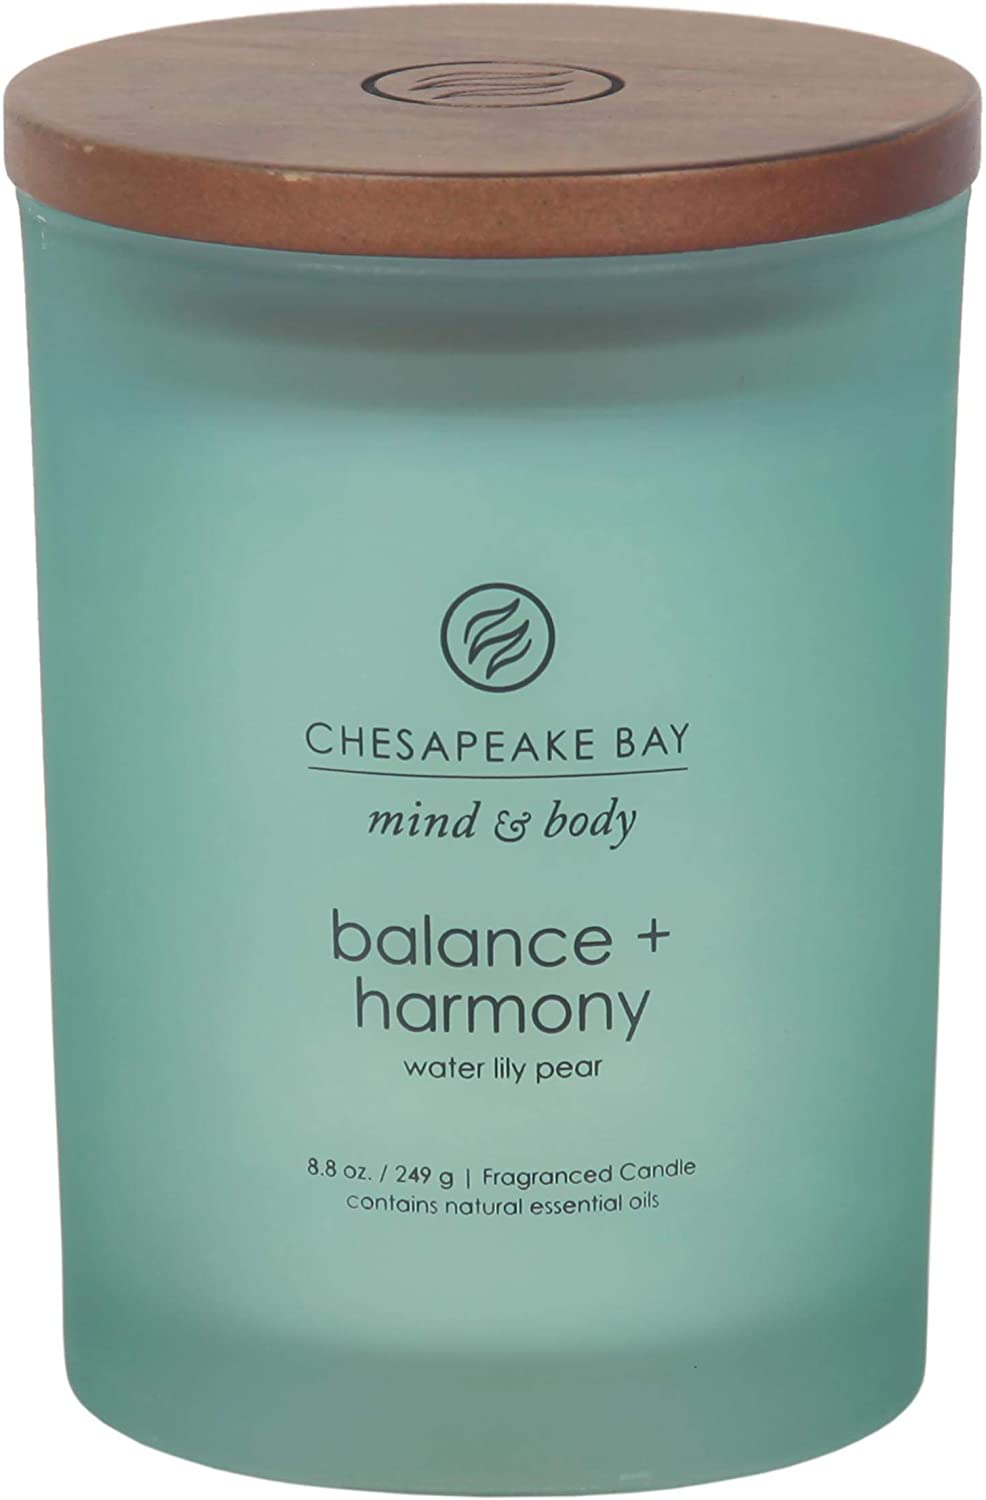 Chesapeake Bay Candle Scented Candle